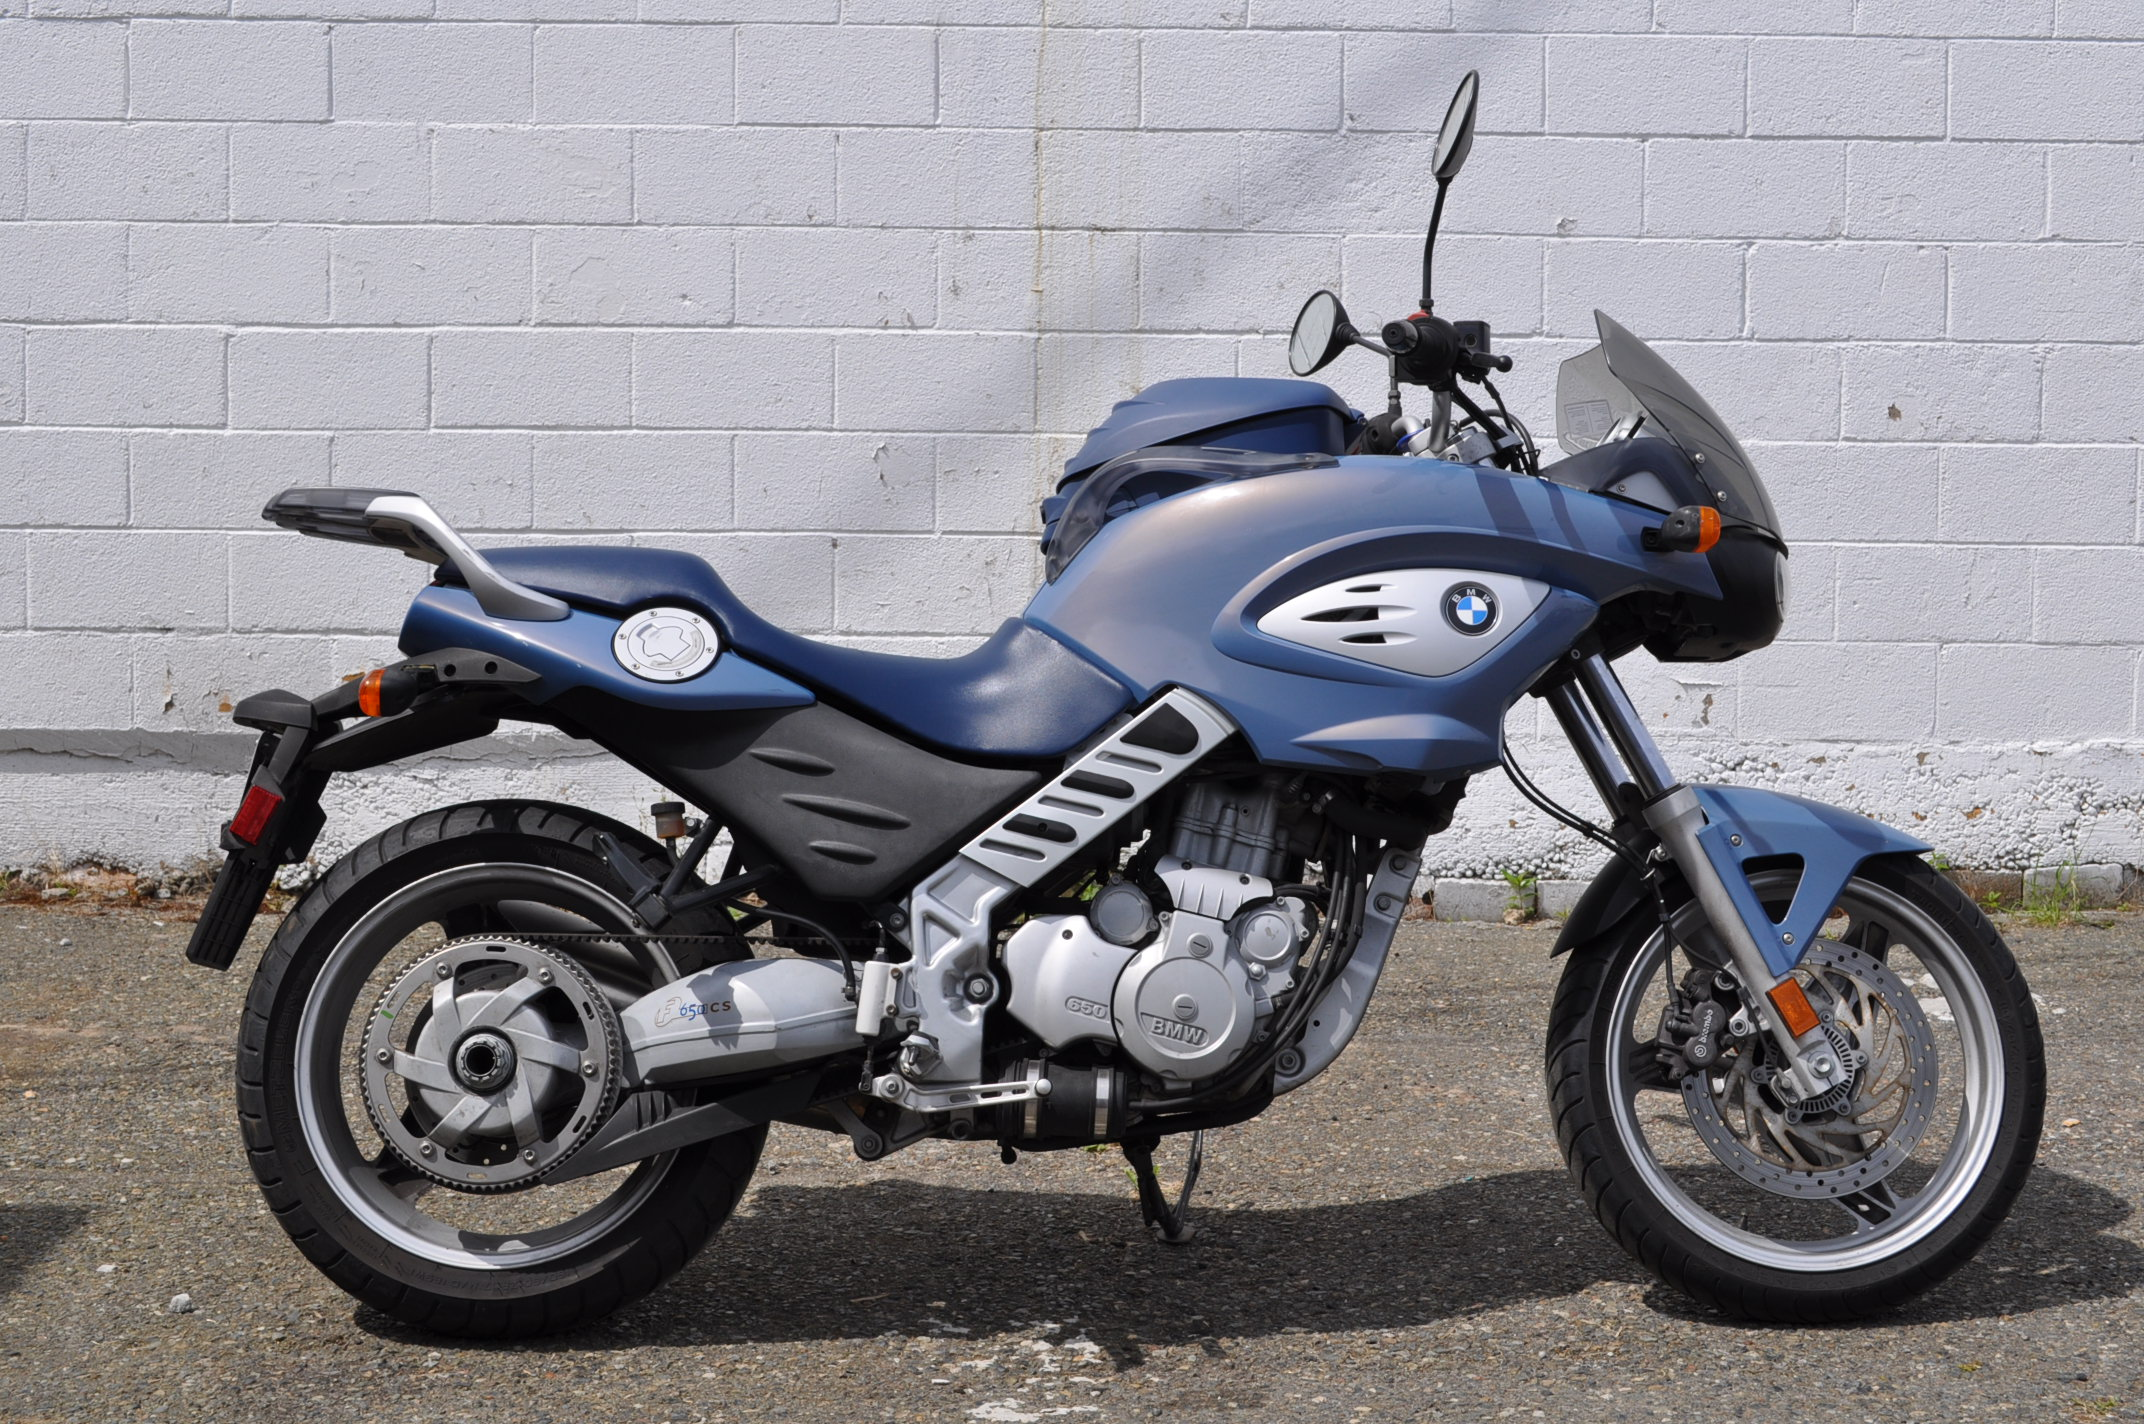 BMW F650CS 2003 images #7794